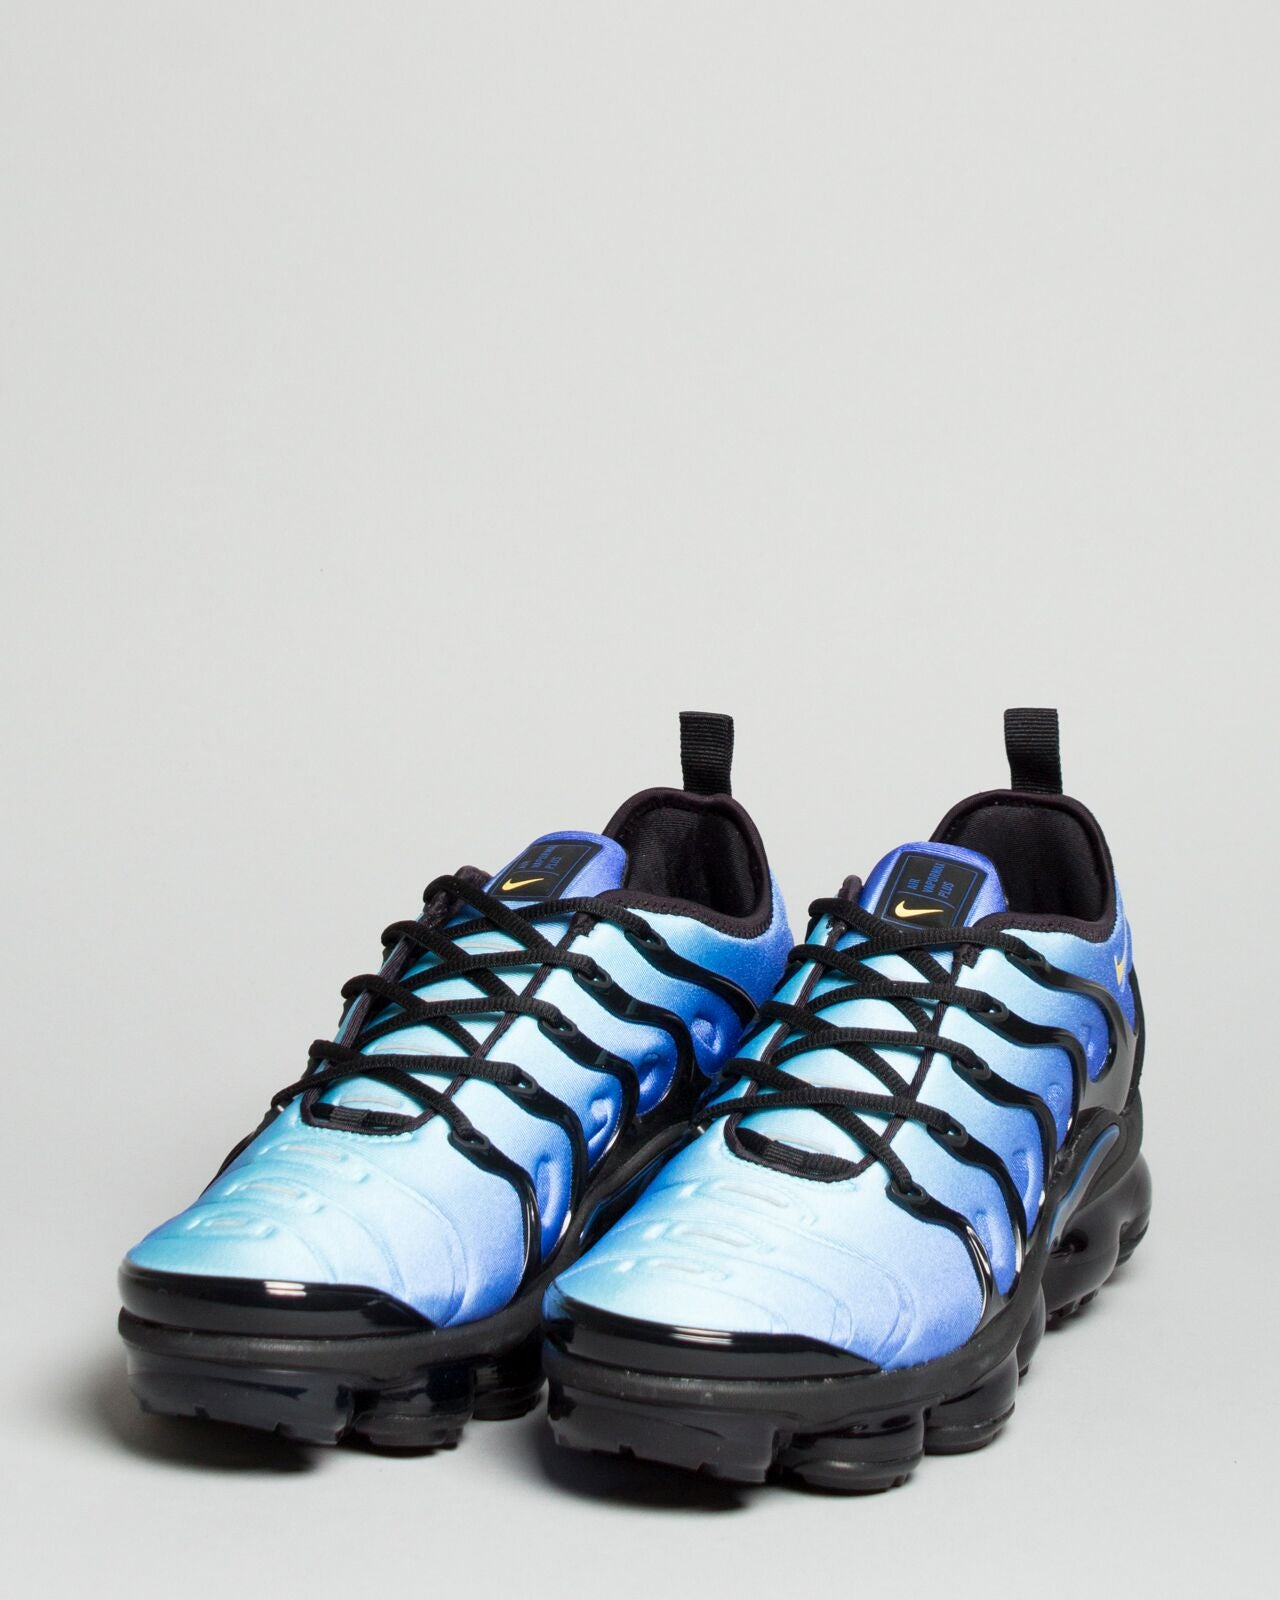 a63701ccdc1f Air VaporMax Plus Black Chamois Hyper Blue – LIKELIHOOD